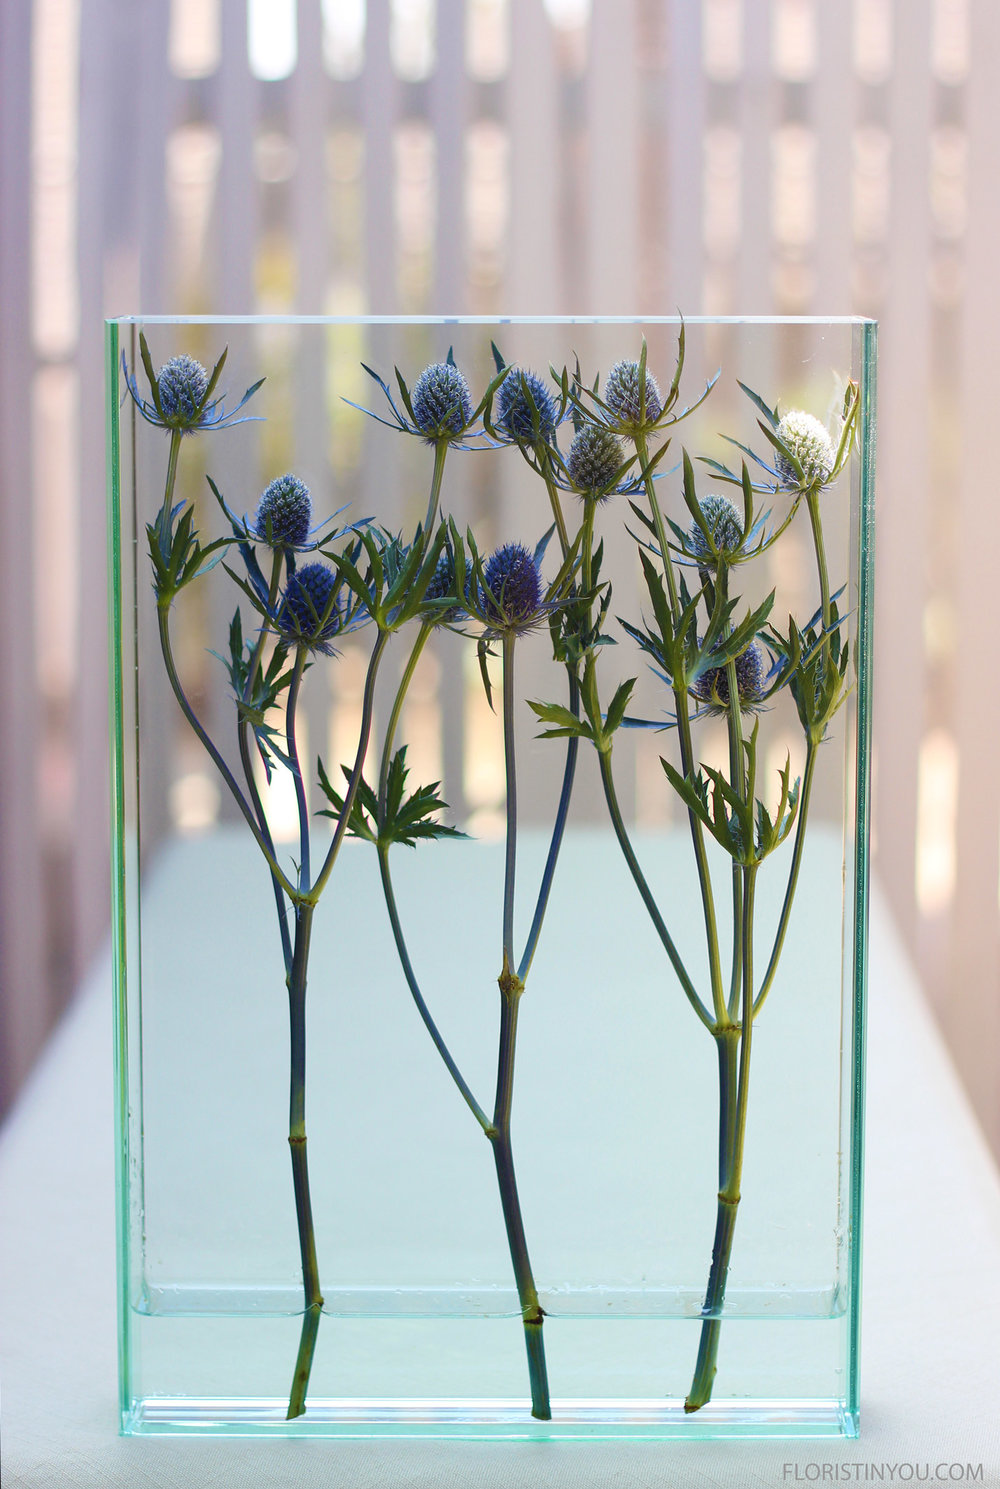 Amethyst Sea Holly in a Modern Vase